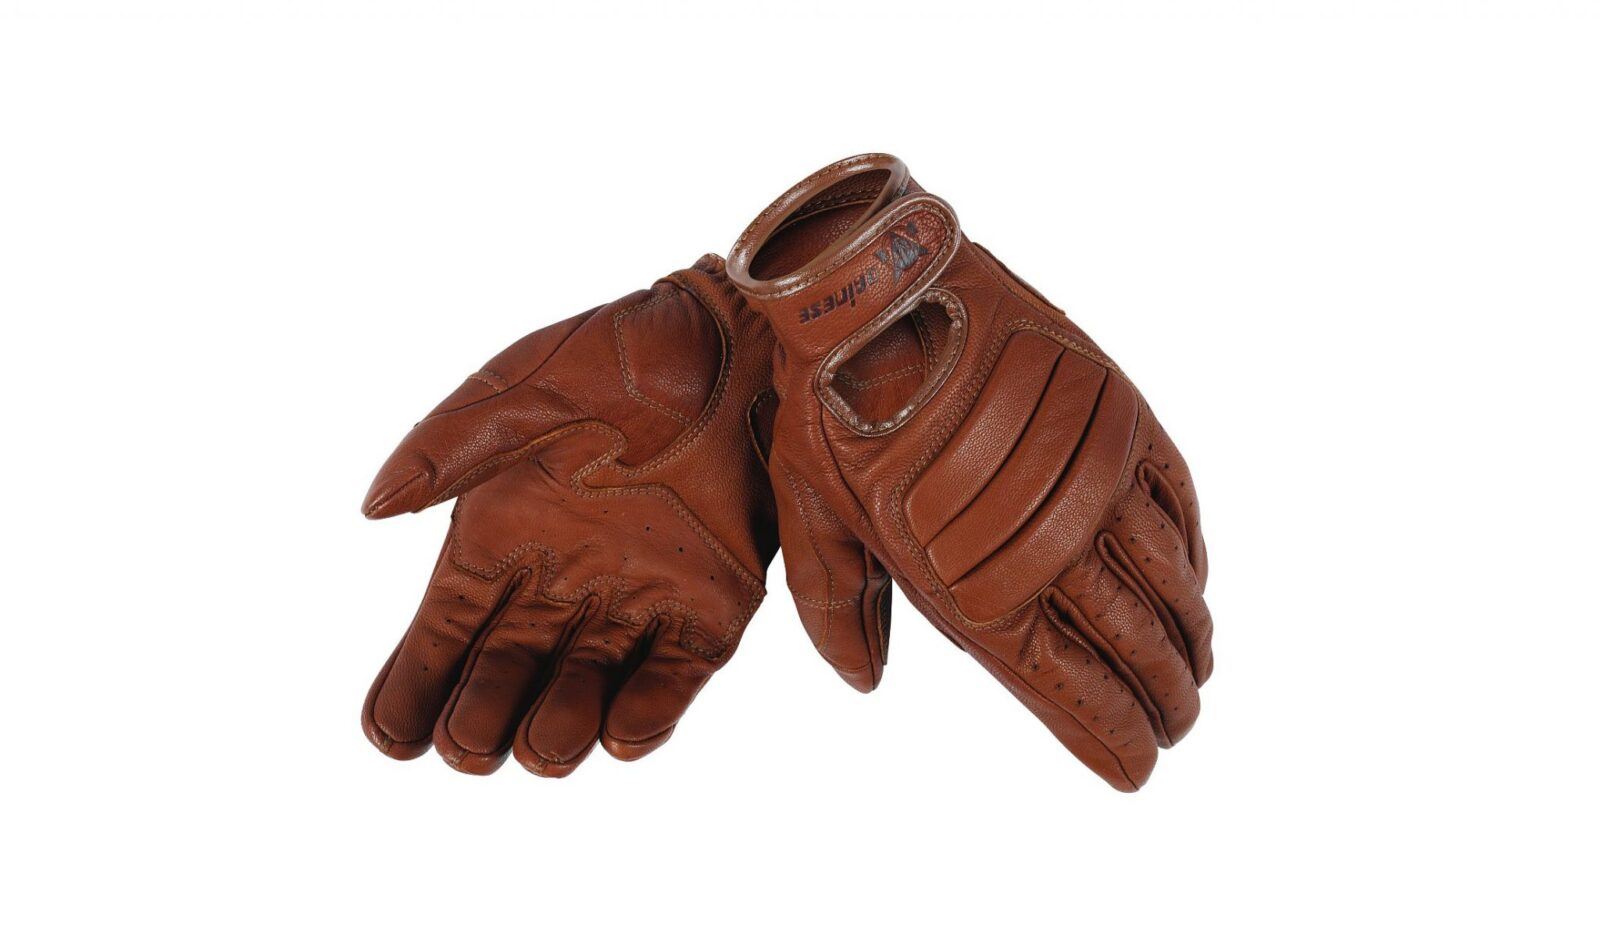 Dainese Ellis Gloves 1600x946 - Dainese Ellis Gloves